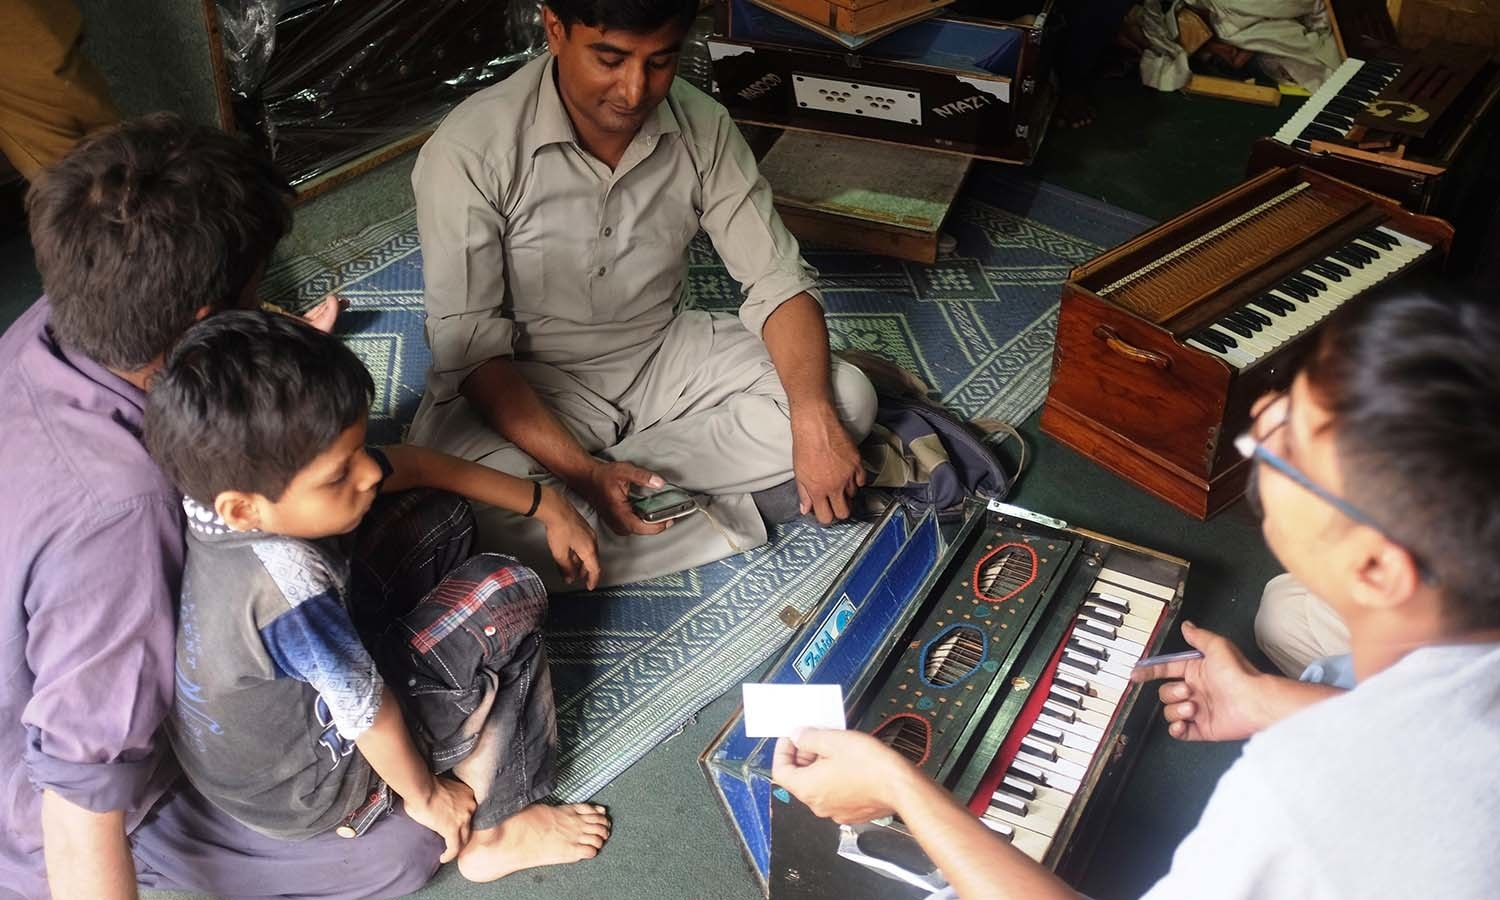 A musician from Hyderabad gets his harmonium repaired at Waqar's shop.